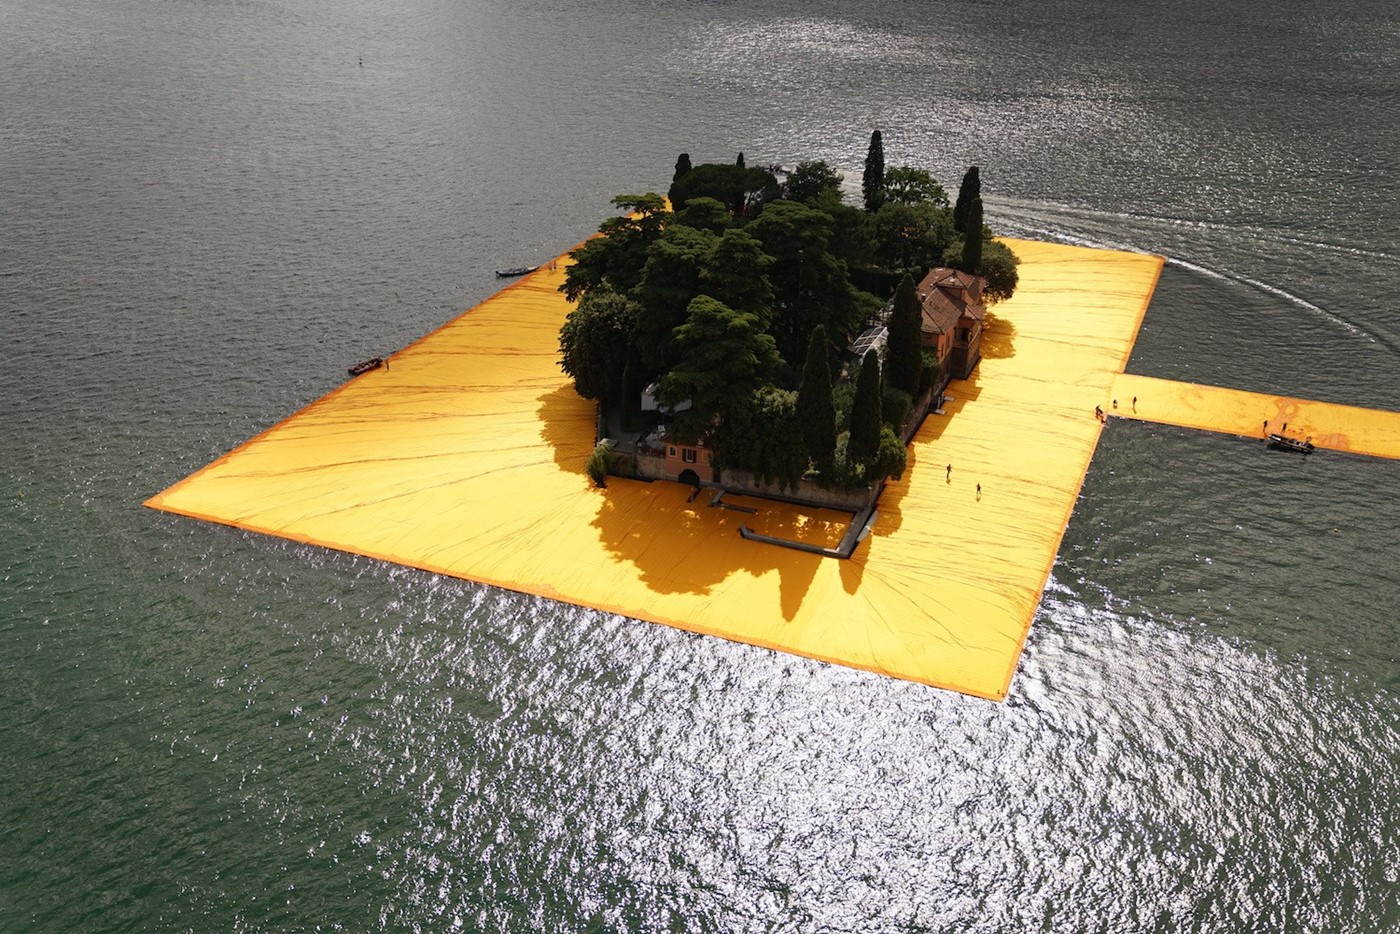 The Floating Piers - The Floating Piers, Lake Iseo